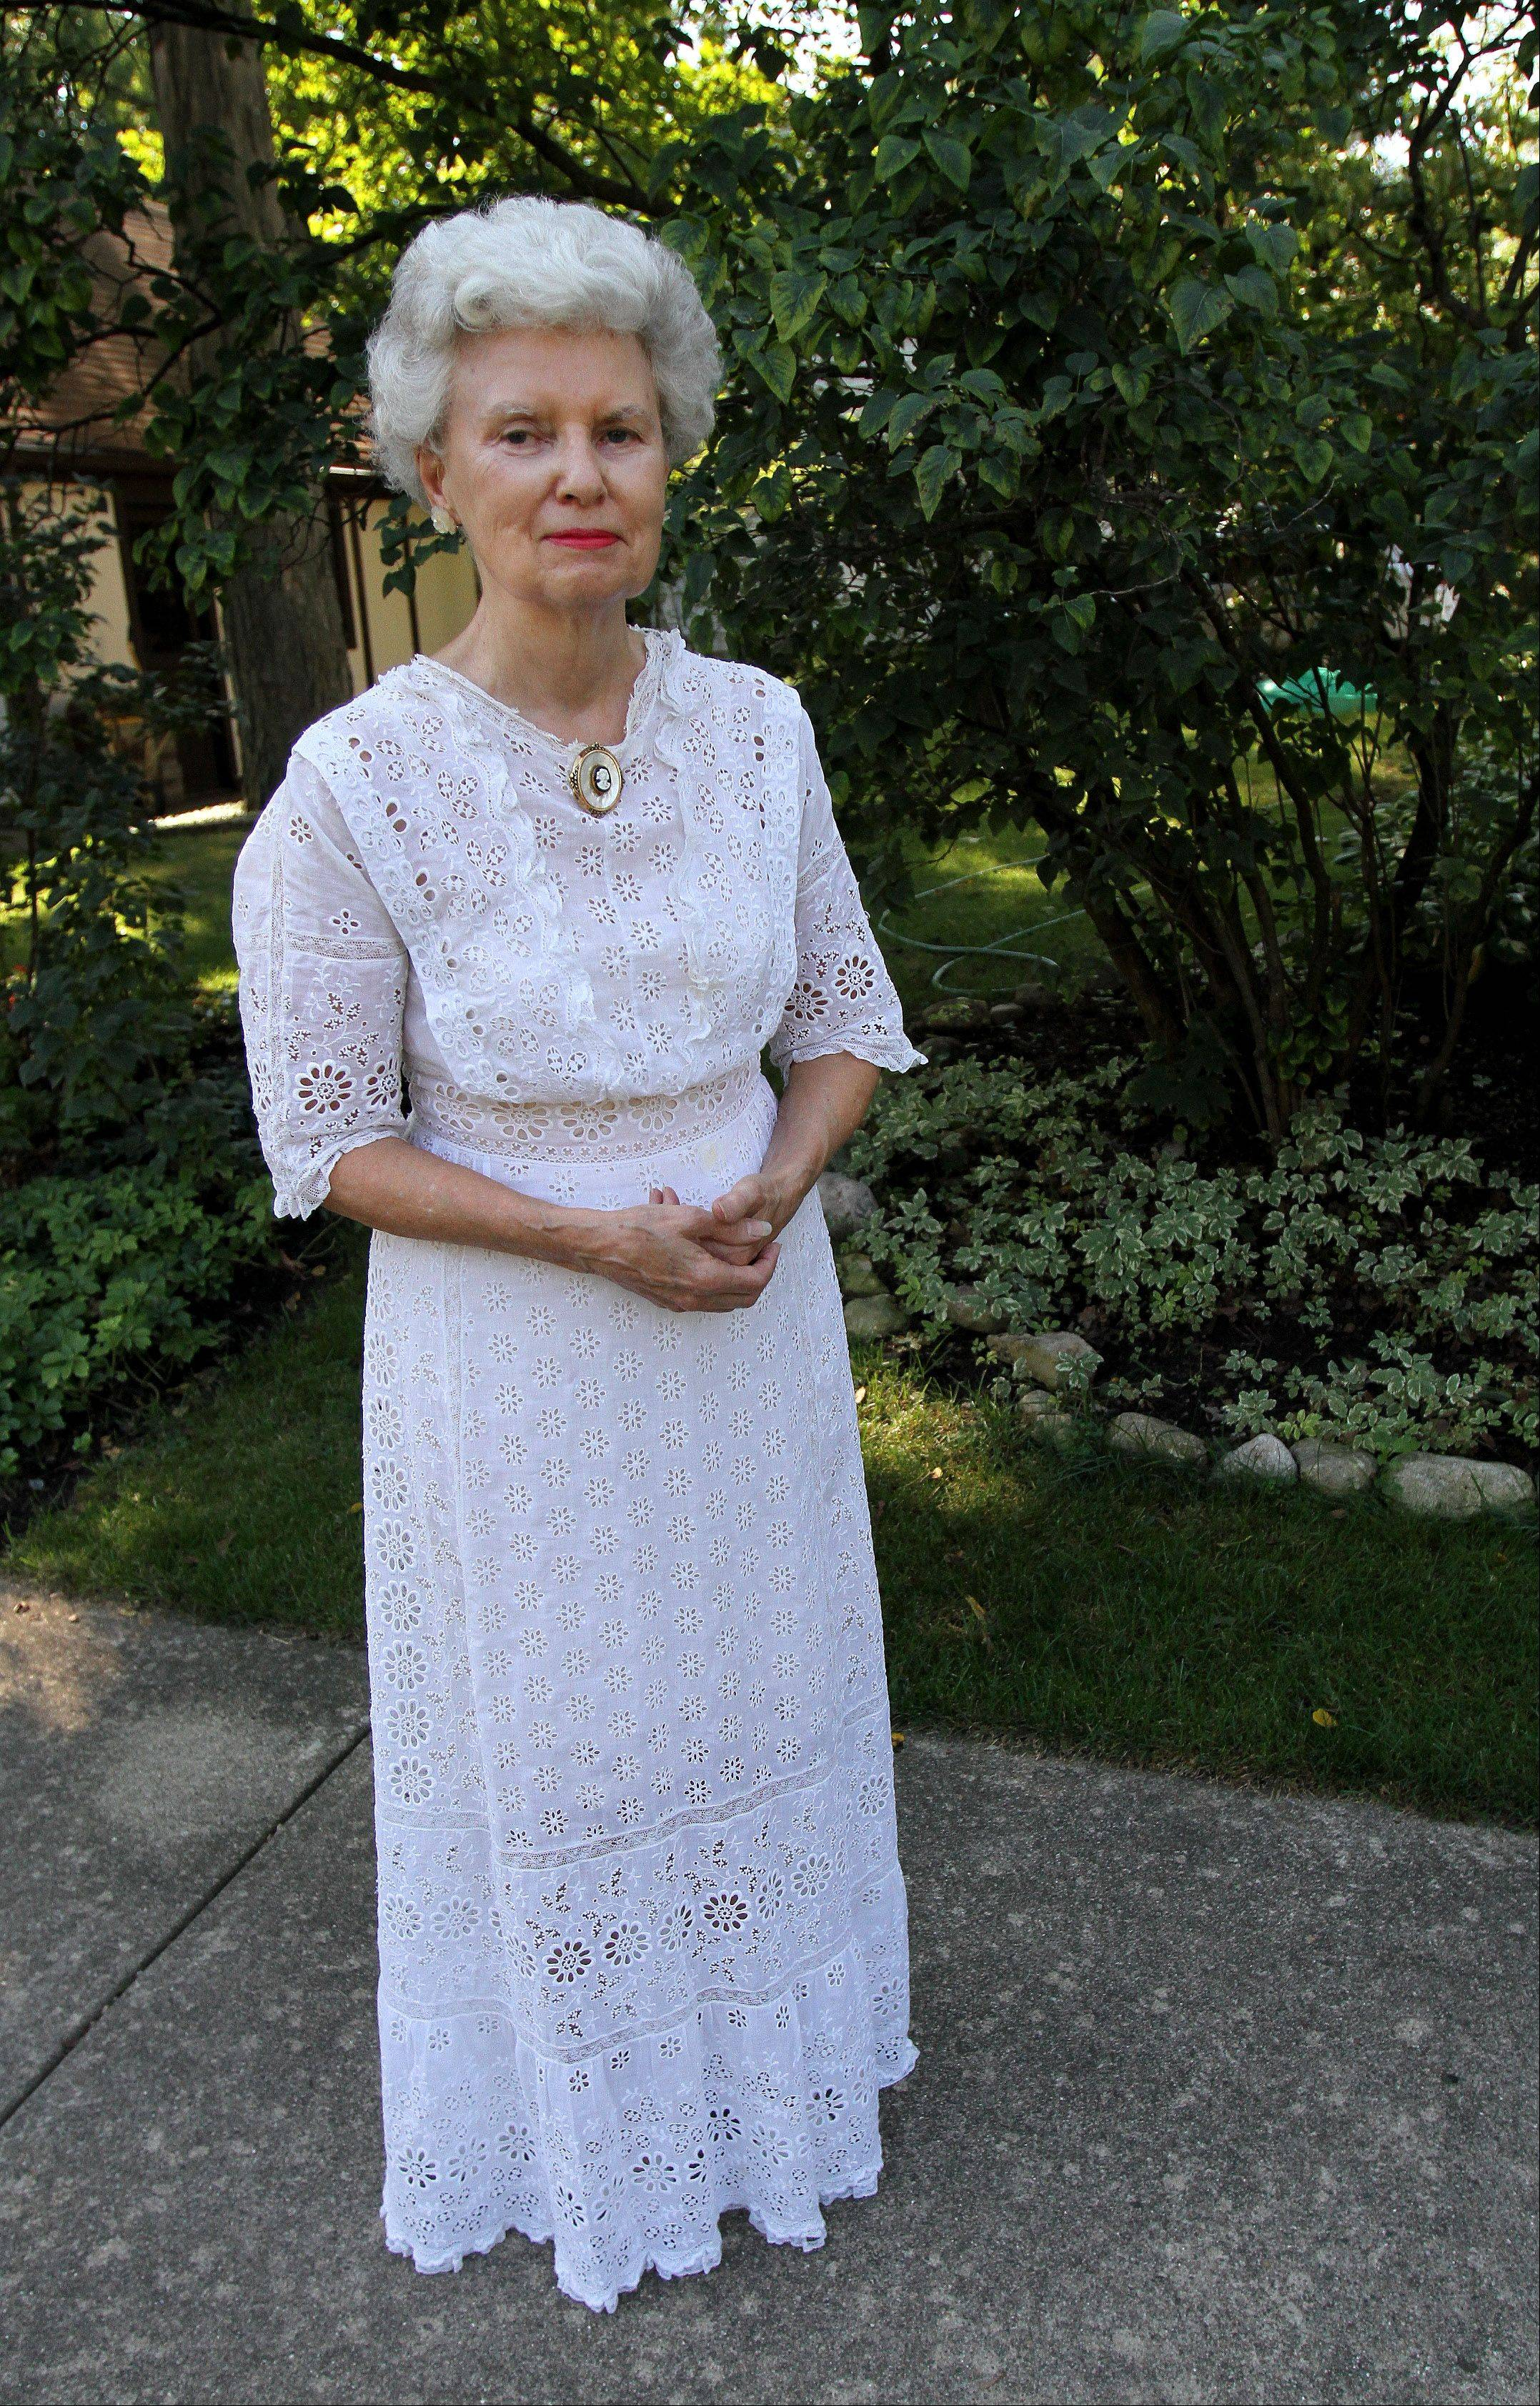 Carol Miller of Glen Ellyn will wear her husband's great-grandmother's wedding dress from 1860 when she gives a presentation on the history of the Glen Ellyn Woman's Club on Tuesday, Sept. 11.